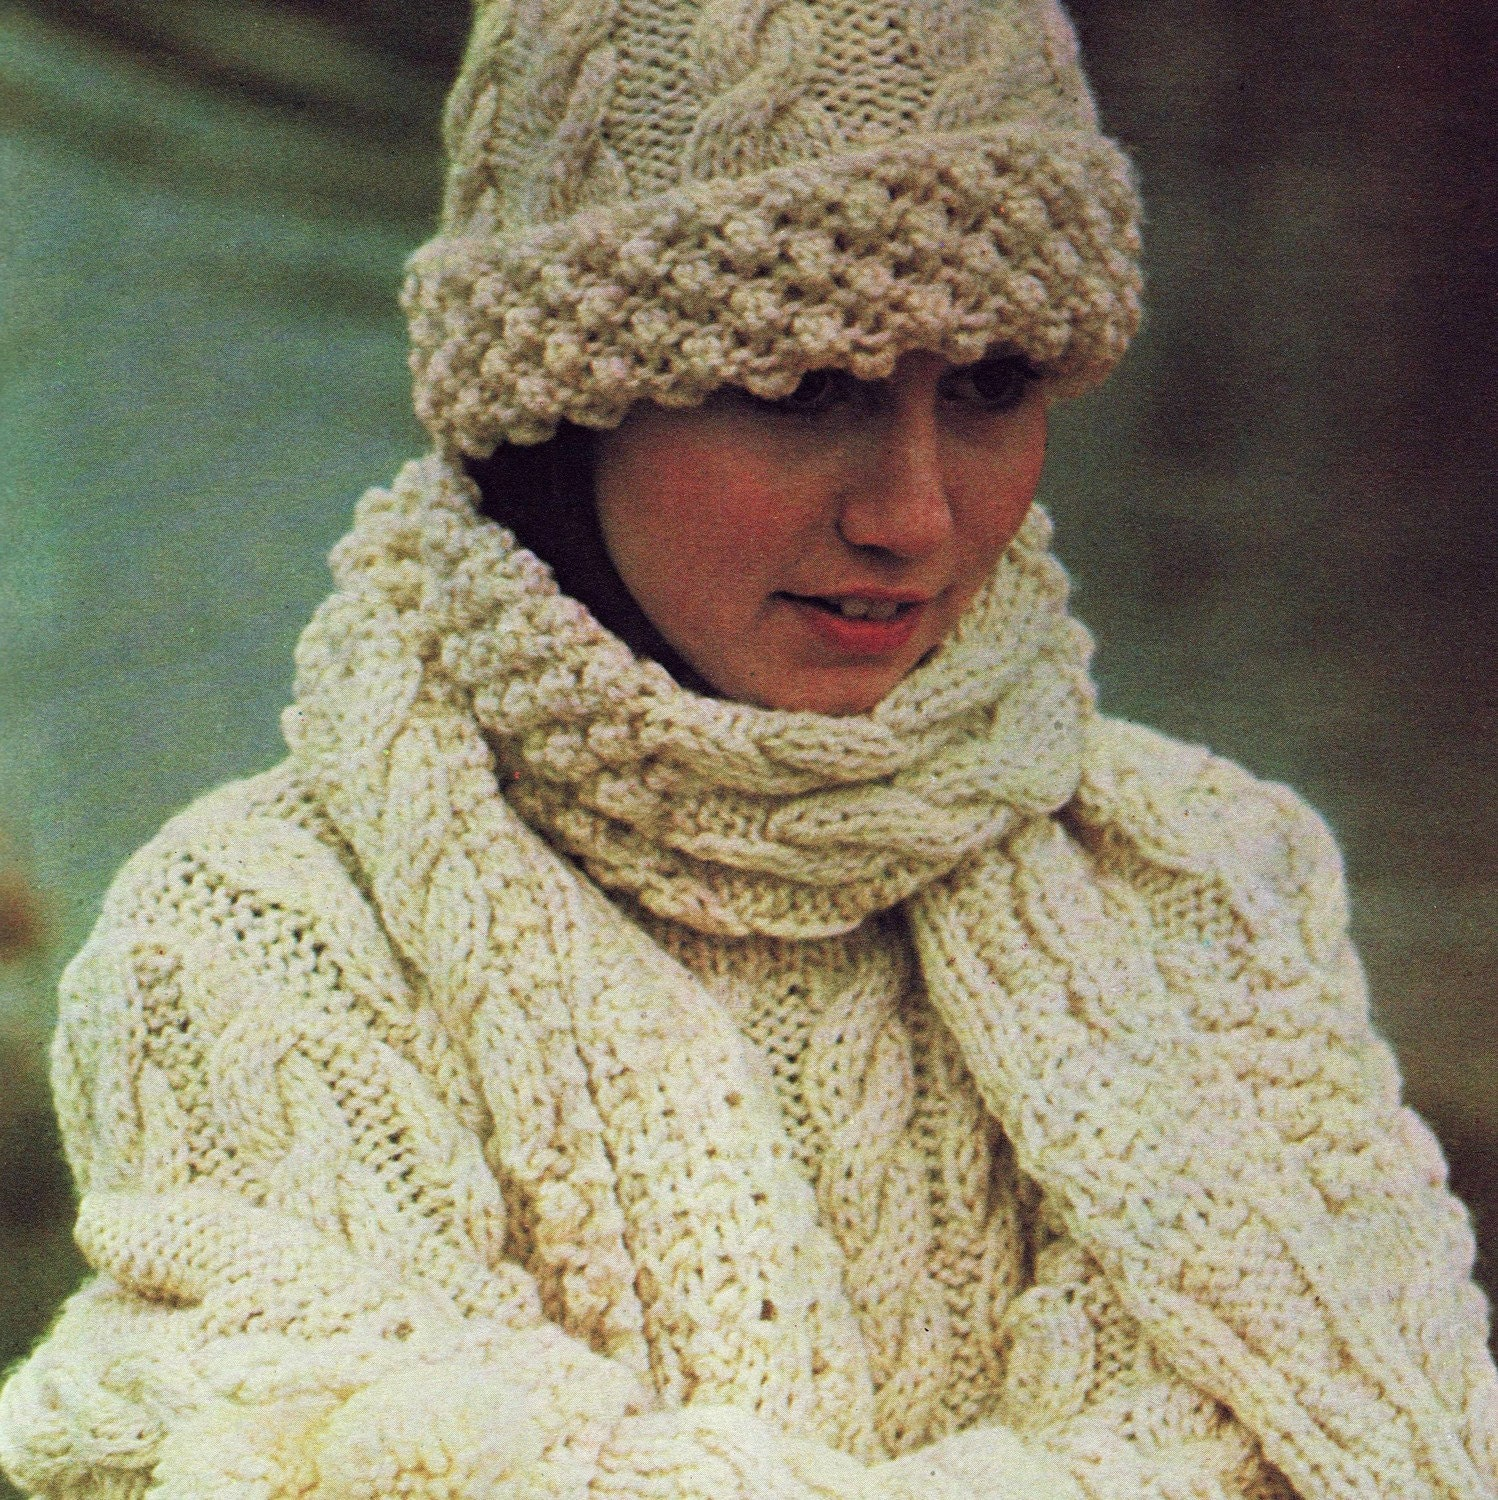 Knitting Pattern Vintage Hat : Bulky Knit Reversible Cable Braid Scarf